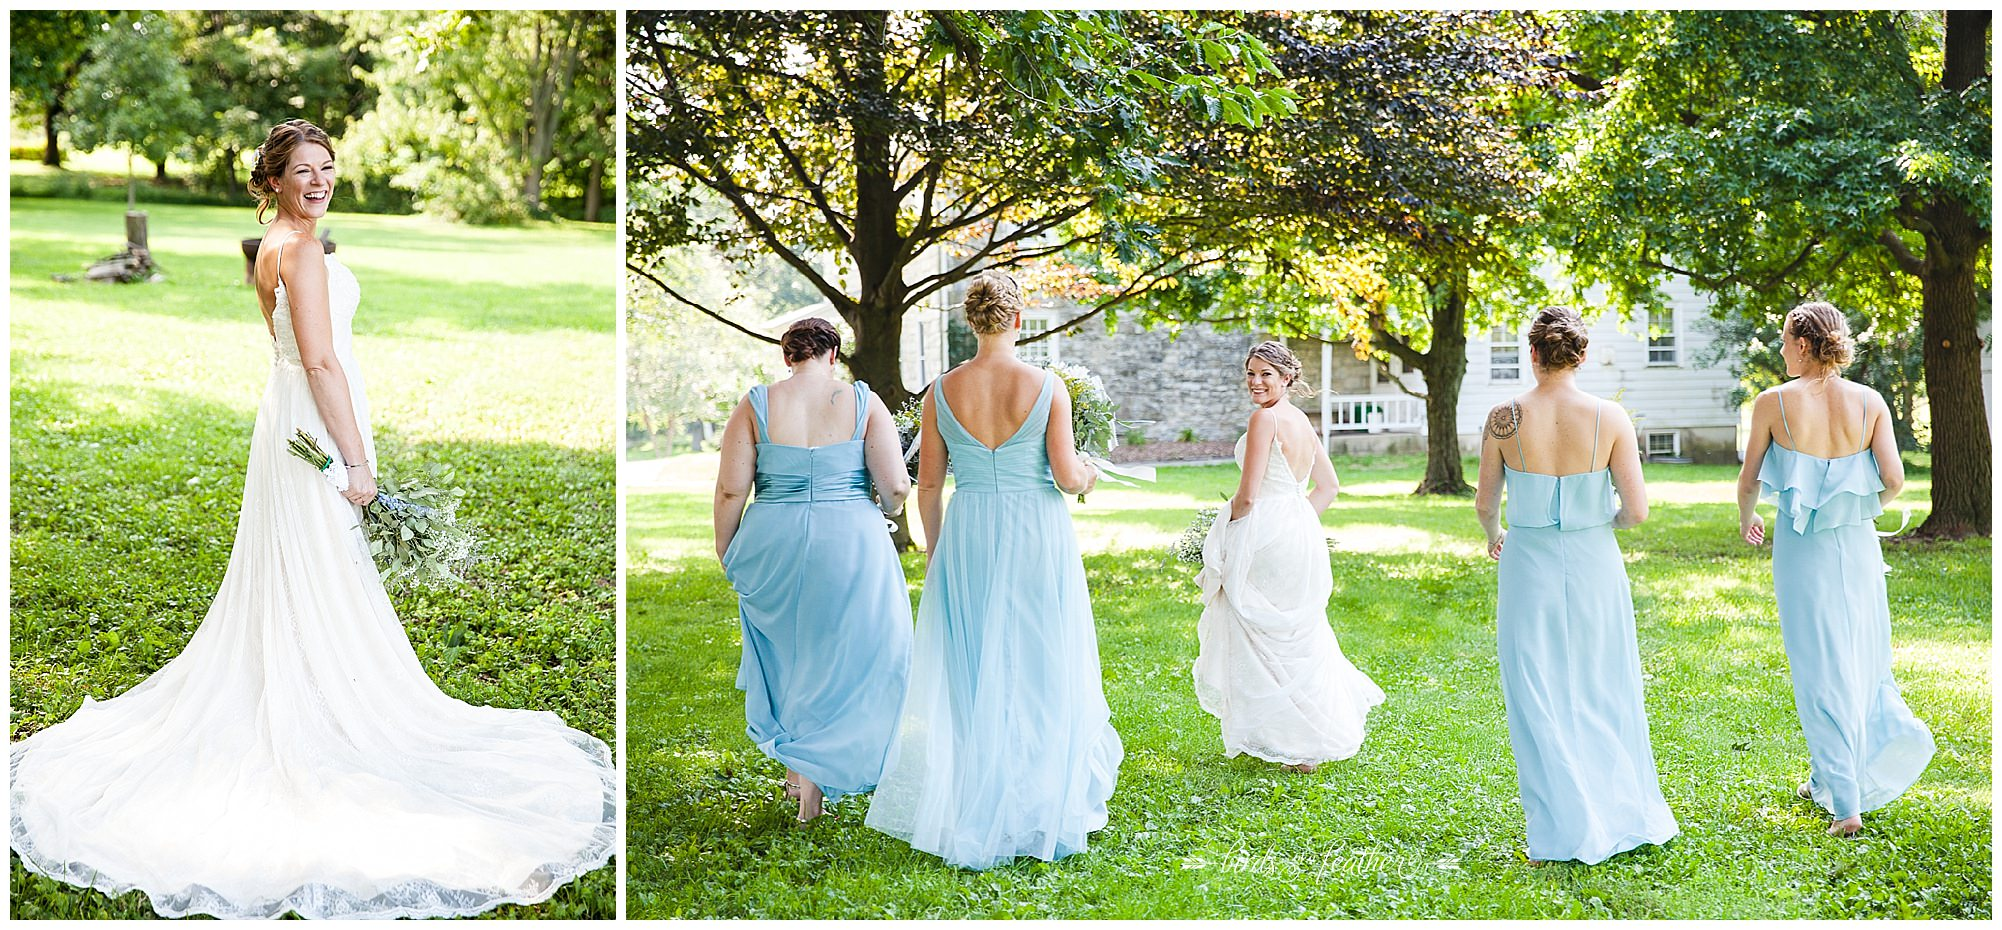 Birds of a Feather Photography Rodale Institute Kutztown Pa Wedding Photographer 05